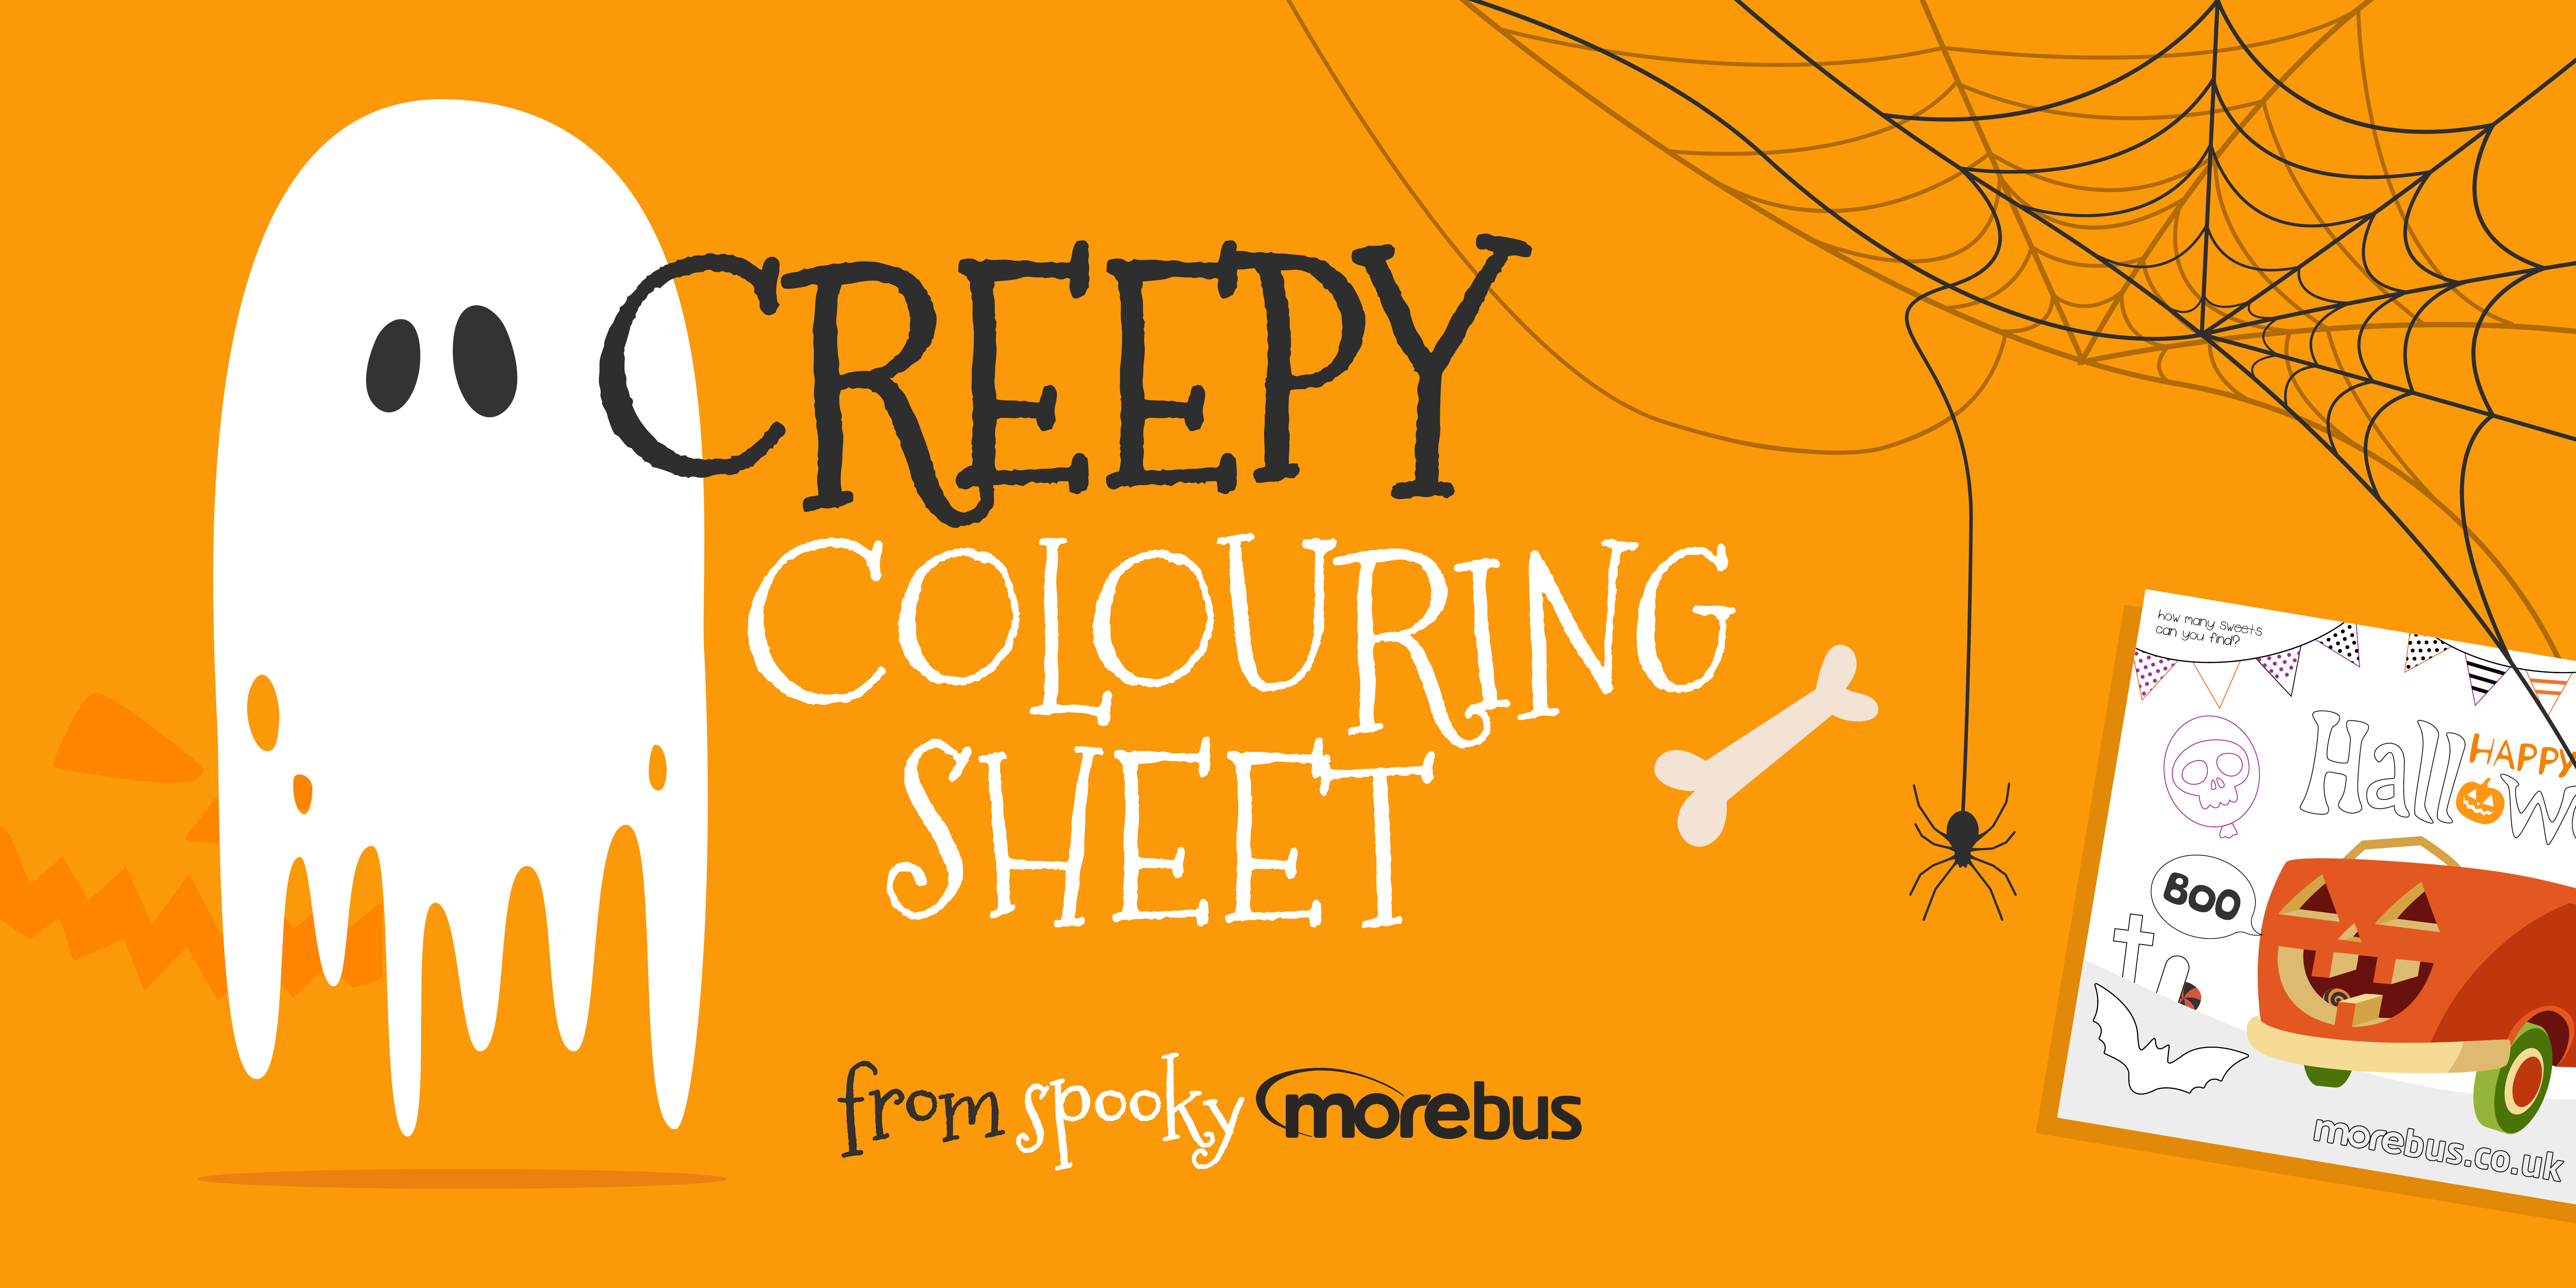 Image with a ghost and spiders web saying 'Creepy colouring sheet, from spooky morebus'